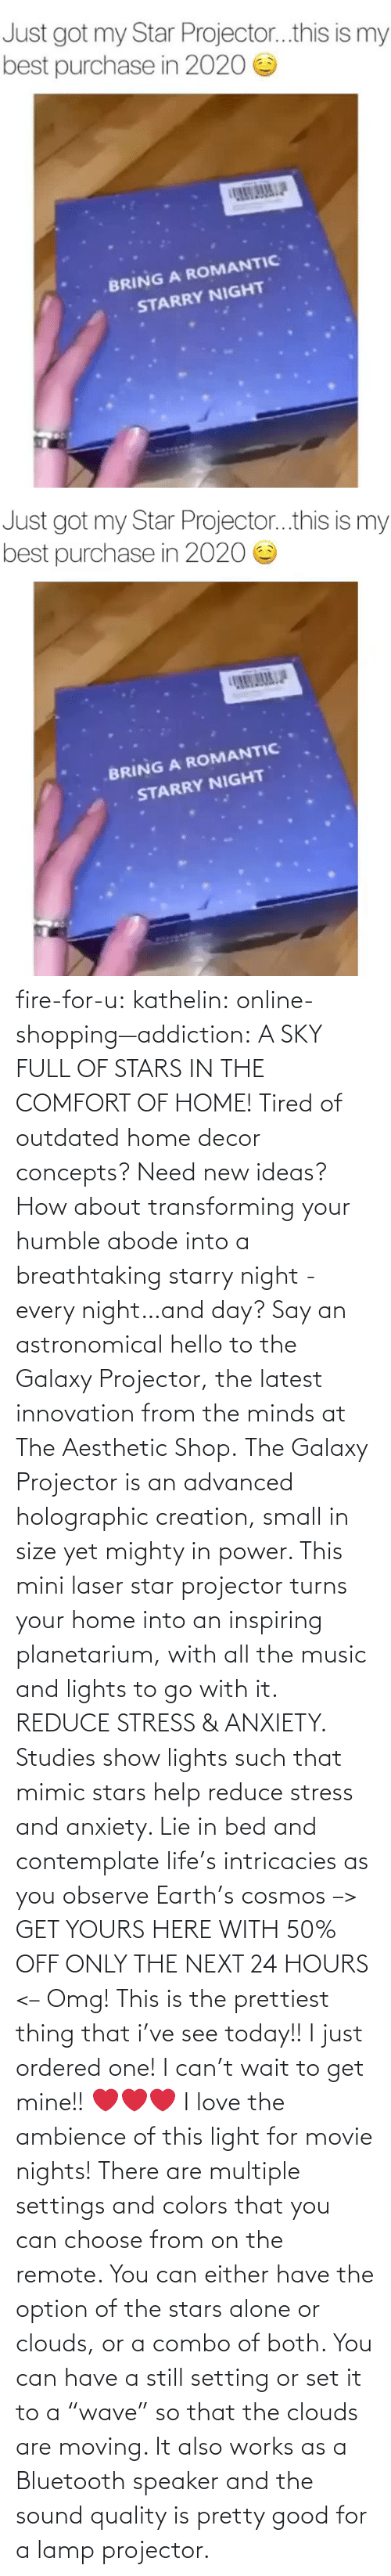 "sky: fire-for-u:  kathelin: online-shopping—addiction:  A SKY FULL OF STARS IN THE COMFORT OF HOME! Tired of outdated home decor concepts? Need new ideas? How about transforming your humble abode into a breathtaking starry night - every night…and day? Say an astronomical hello to the Galaxy Projector, the latest innovation from the minds at The Aesthetic Shop. The Galaxy Projector is an advanced holographic creation, small in size yet mighty in power. This mini laser star projector turns your home into an inspiring planetarium, with all the music and lights to go with it. REDUCE STRESS & ANXIETY. Studies show lights such that mimic stars help reduce stress and anxiety. Lie in bed and contemplate life's intricacies as you observe Earth's cosmos  –> GET YOURS HERE WITH 50% OFF ONLY THE NEXT 24 HOURS <–   Omg! This is the prettiest thing that i've see today!! I just ordered one! I can't wait to get mine!! ❤️️❤️️❤️️  I love the ambience of this light for movie nights! There are multiple settings and colors that you can choose from on the remote. You can either have the option of the stars alone or clouds, or a combo of both. You can have a still setting or set it to a ""wave"" so that the clouds are moving. It also works as a Bluetooth speaker and the sound quality is pretty good for a lamp projector."